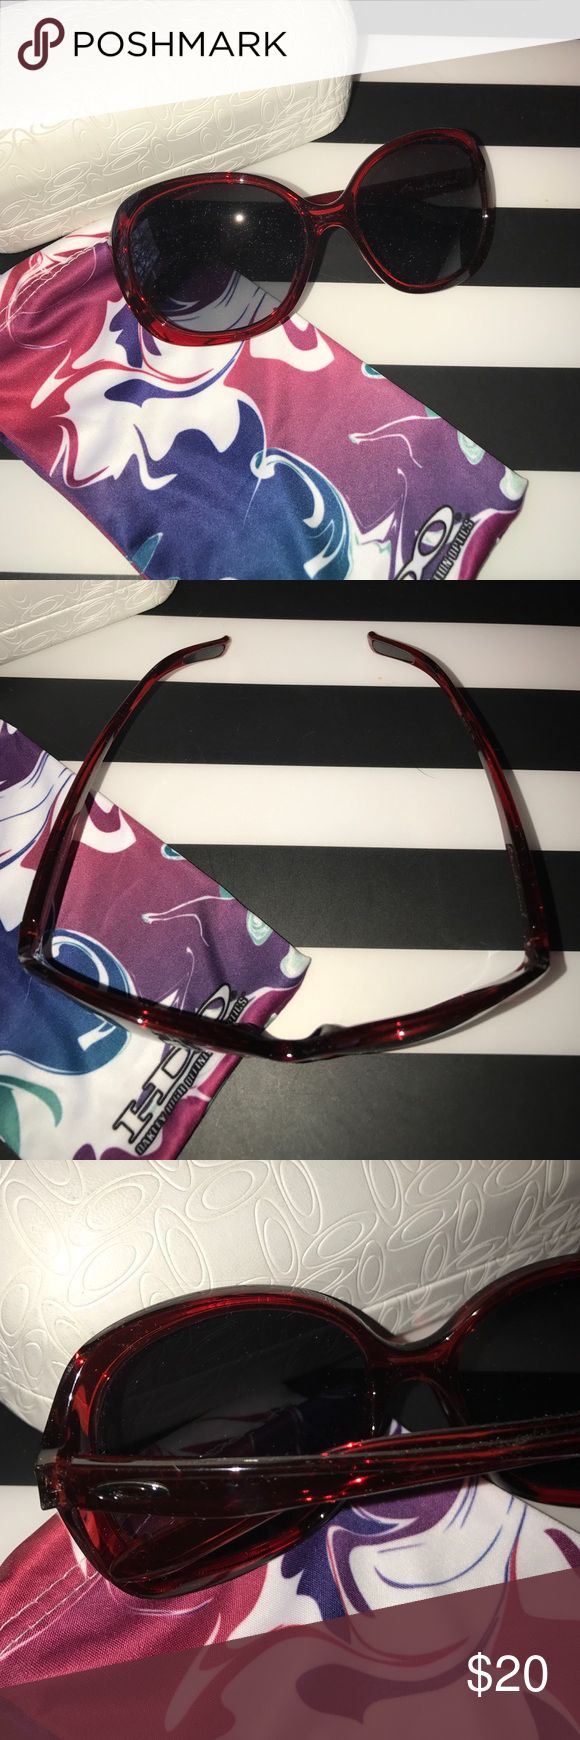 Oakley Backhand Sunglasses Oakley Backhand oversized women's sunglasses. Red frames with gray gradient lenses. NWOT, never worn, comes with hard case and soft cloth bag. Oakley Accessories Sunglasses